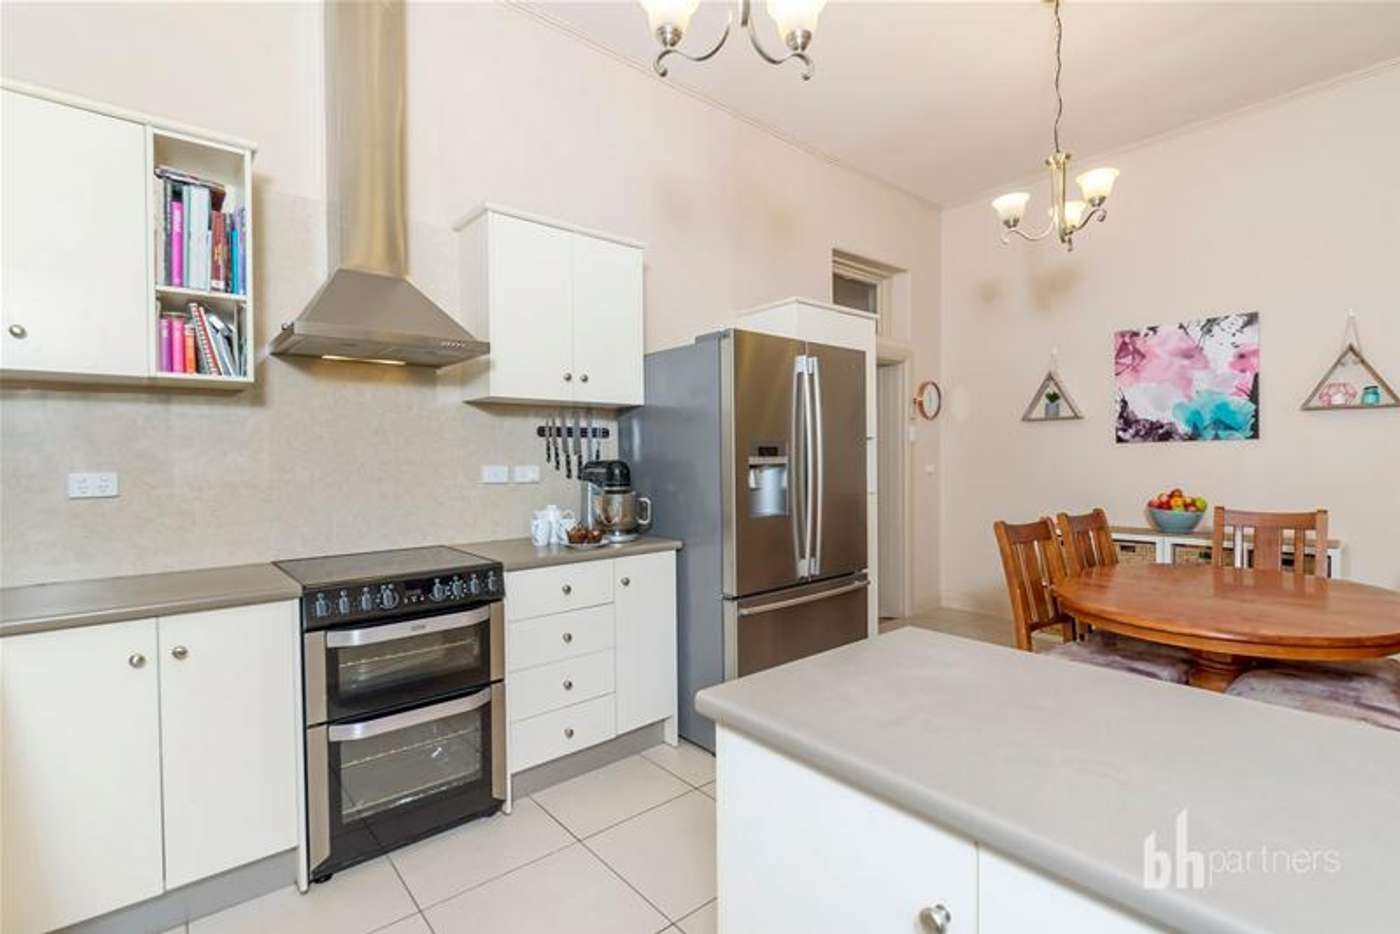 Sixth view of Homely house listing, 77 Cliff Street, Mannum SA 5238